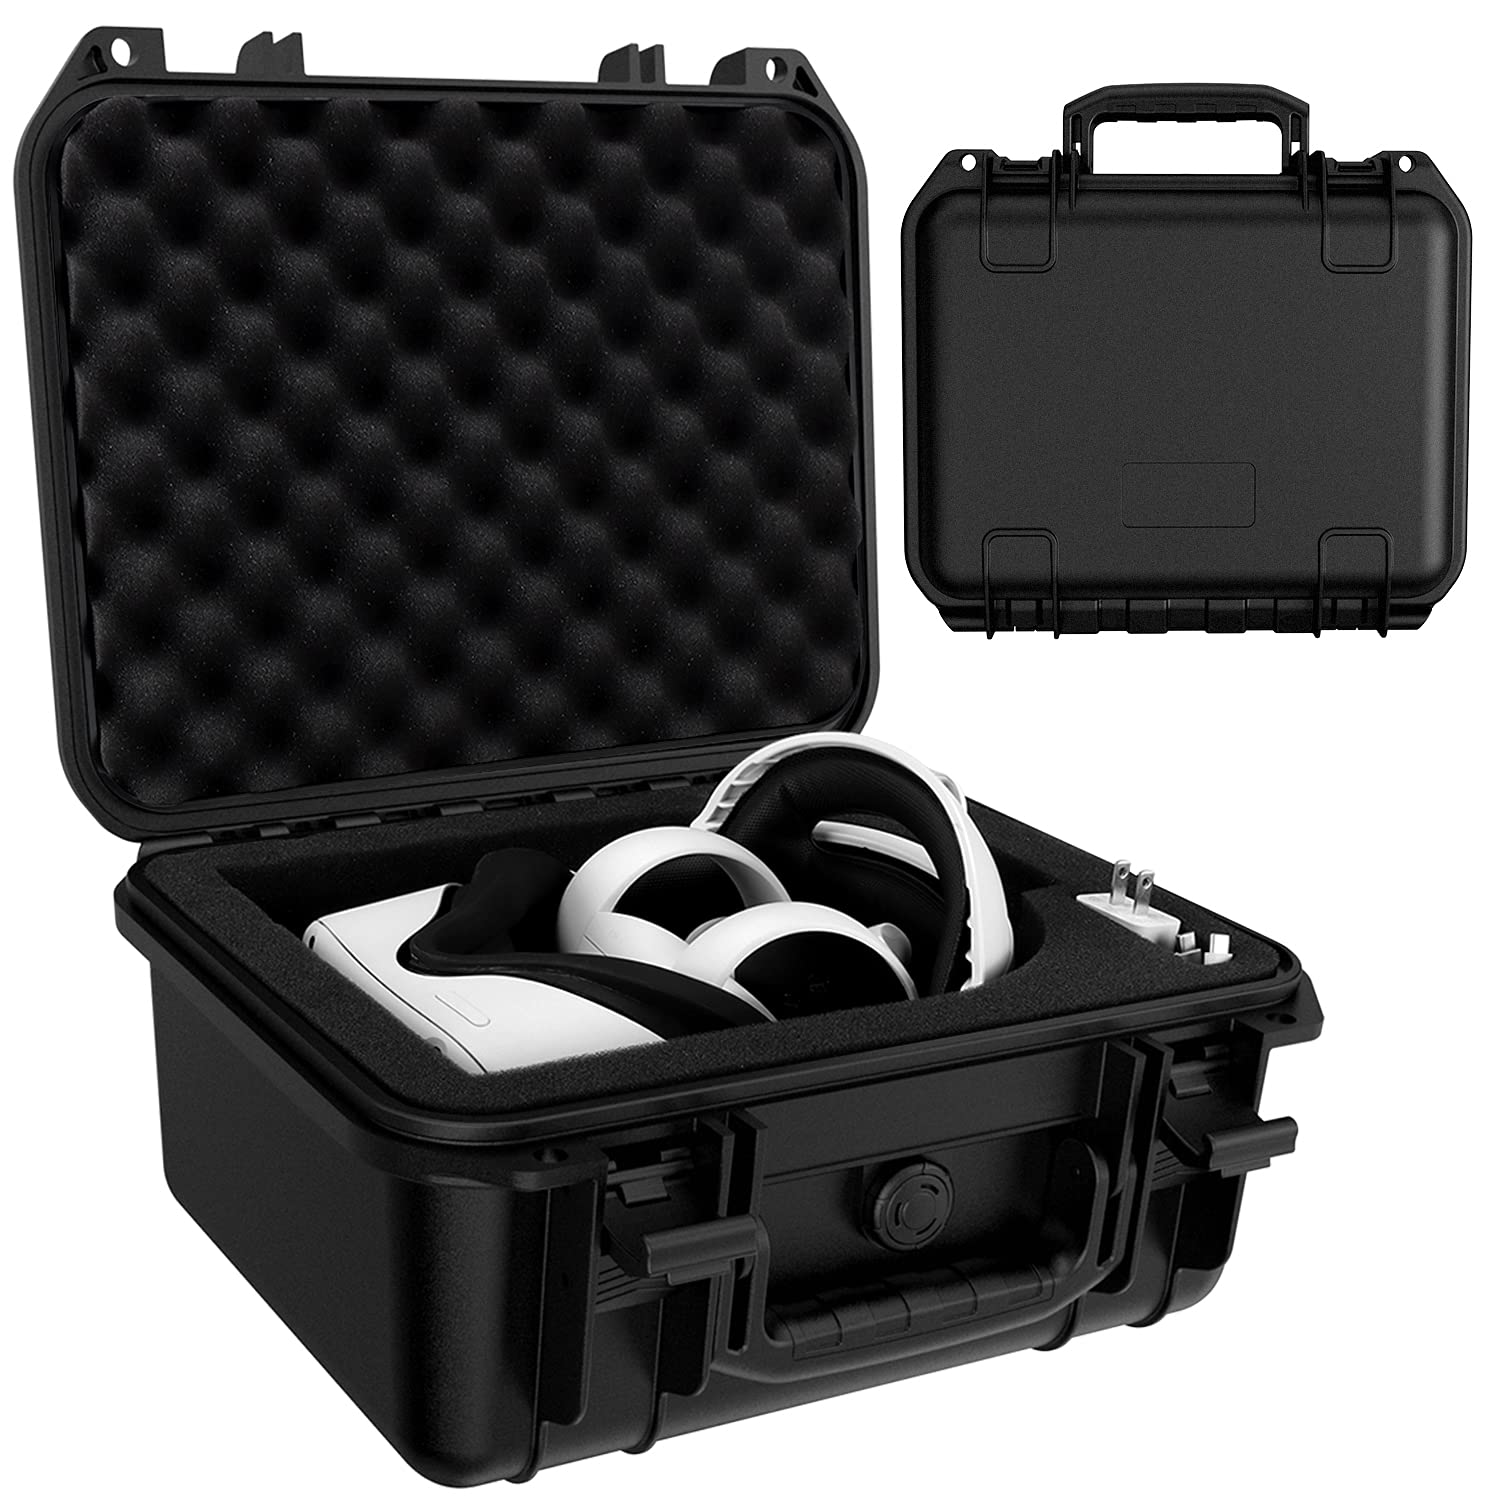 VR Headset Carrying Case for Weekly update Oculus Elite Fits Credence Quest Strap 2 All